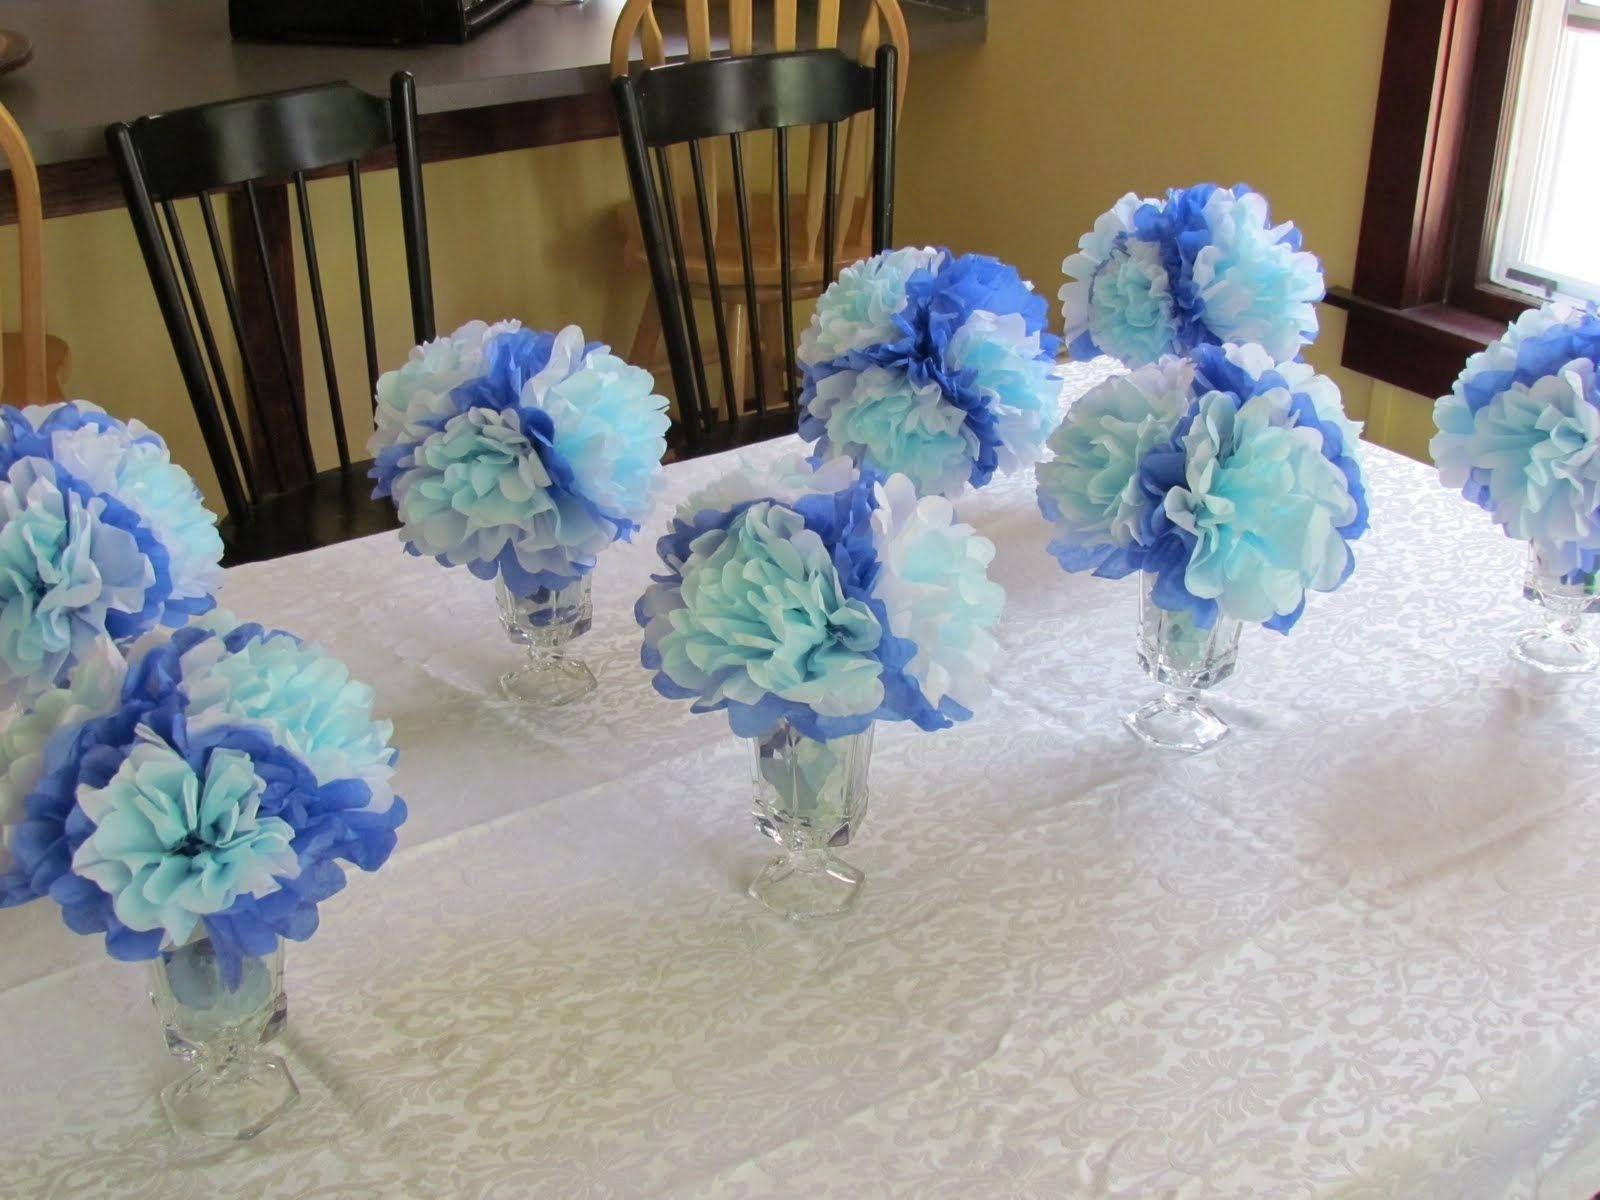 10 Unique Cheap Baby Shower Decoration Ideas baby shower ideas for boys on a budget decorations for my baby 3 2020